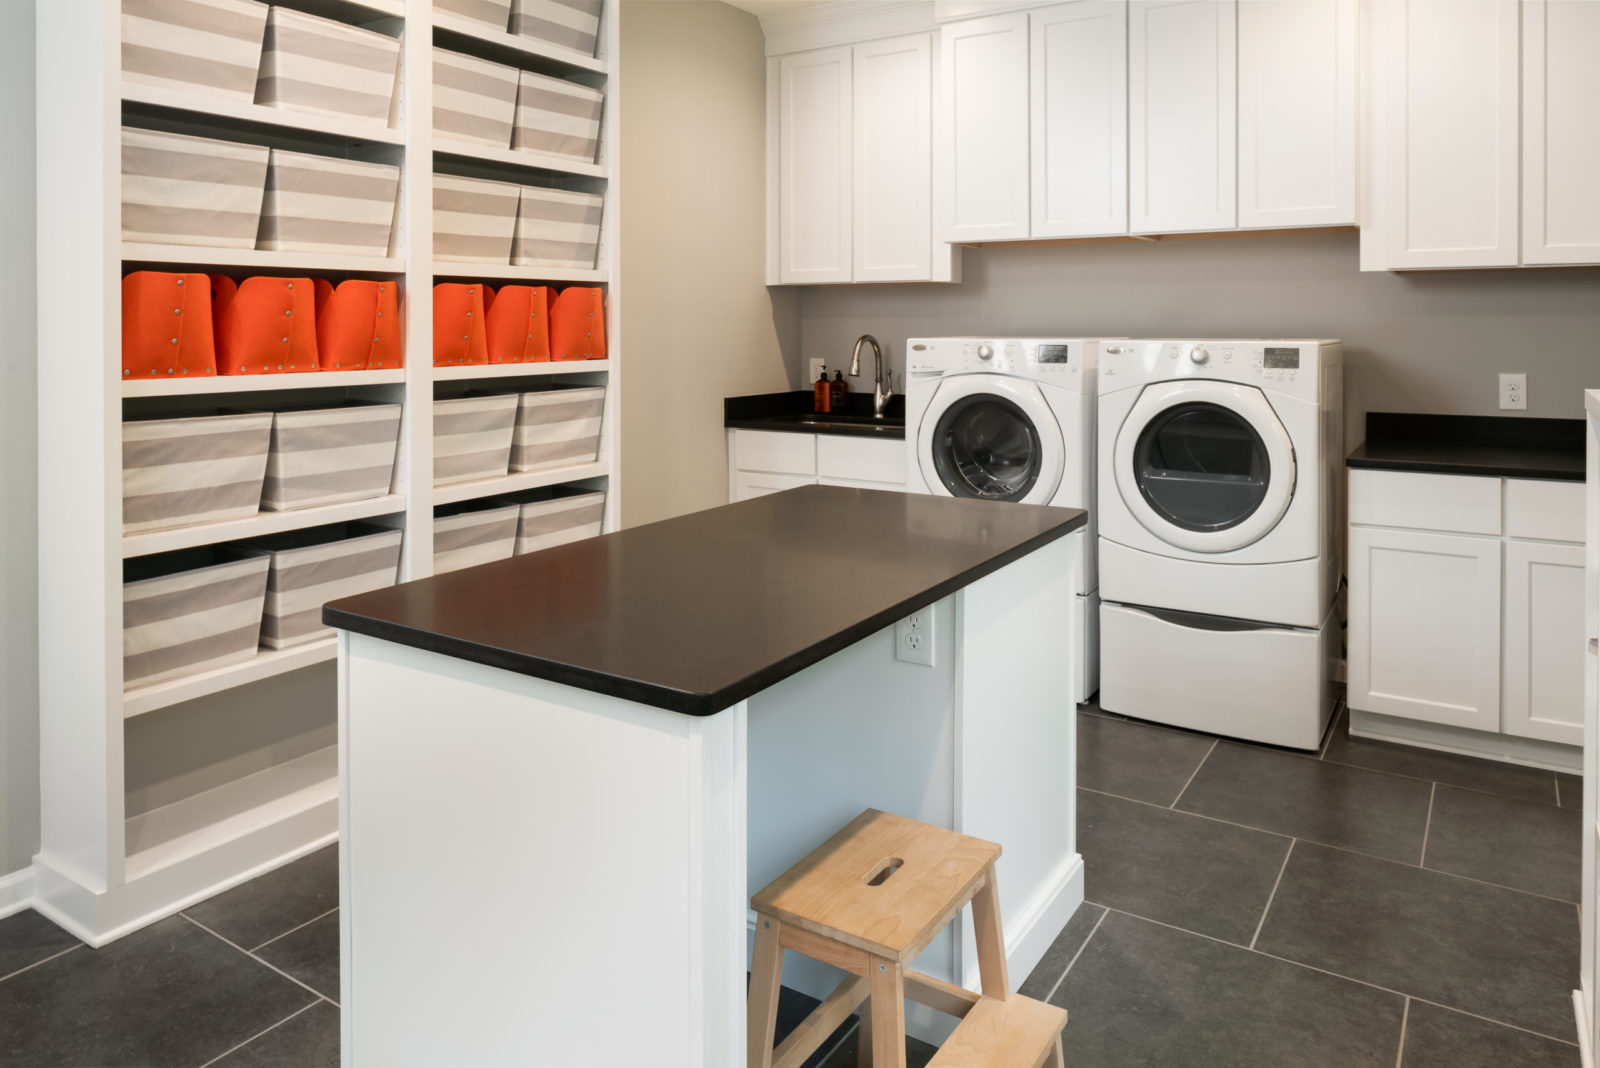 homoe-design-laundry-room-with-island